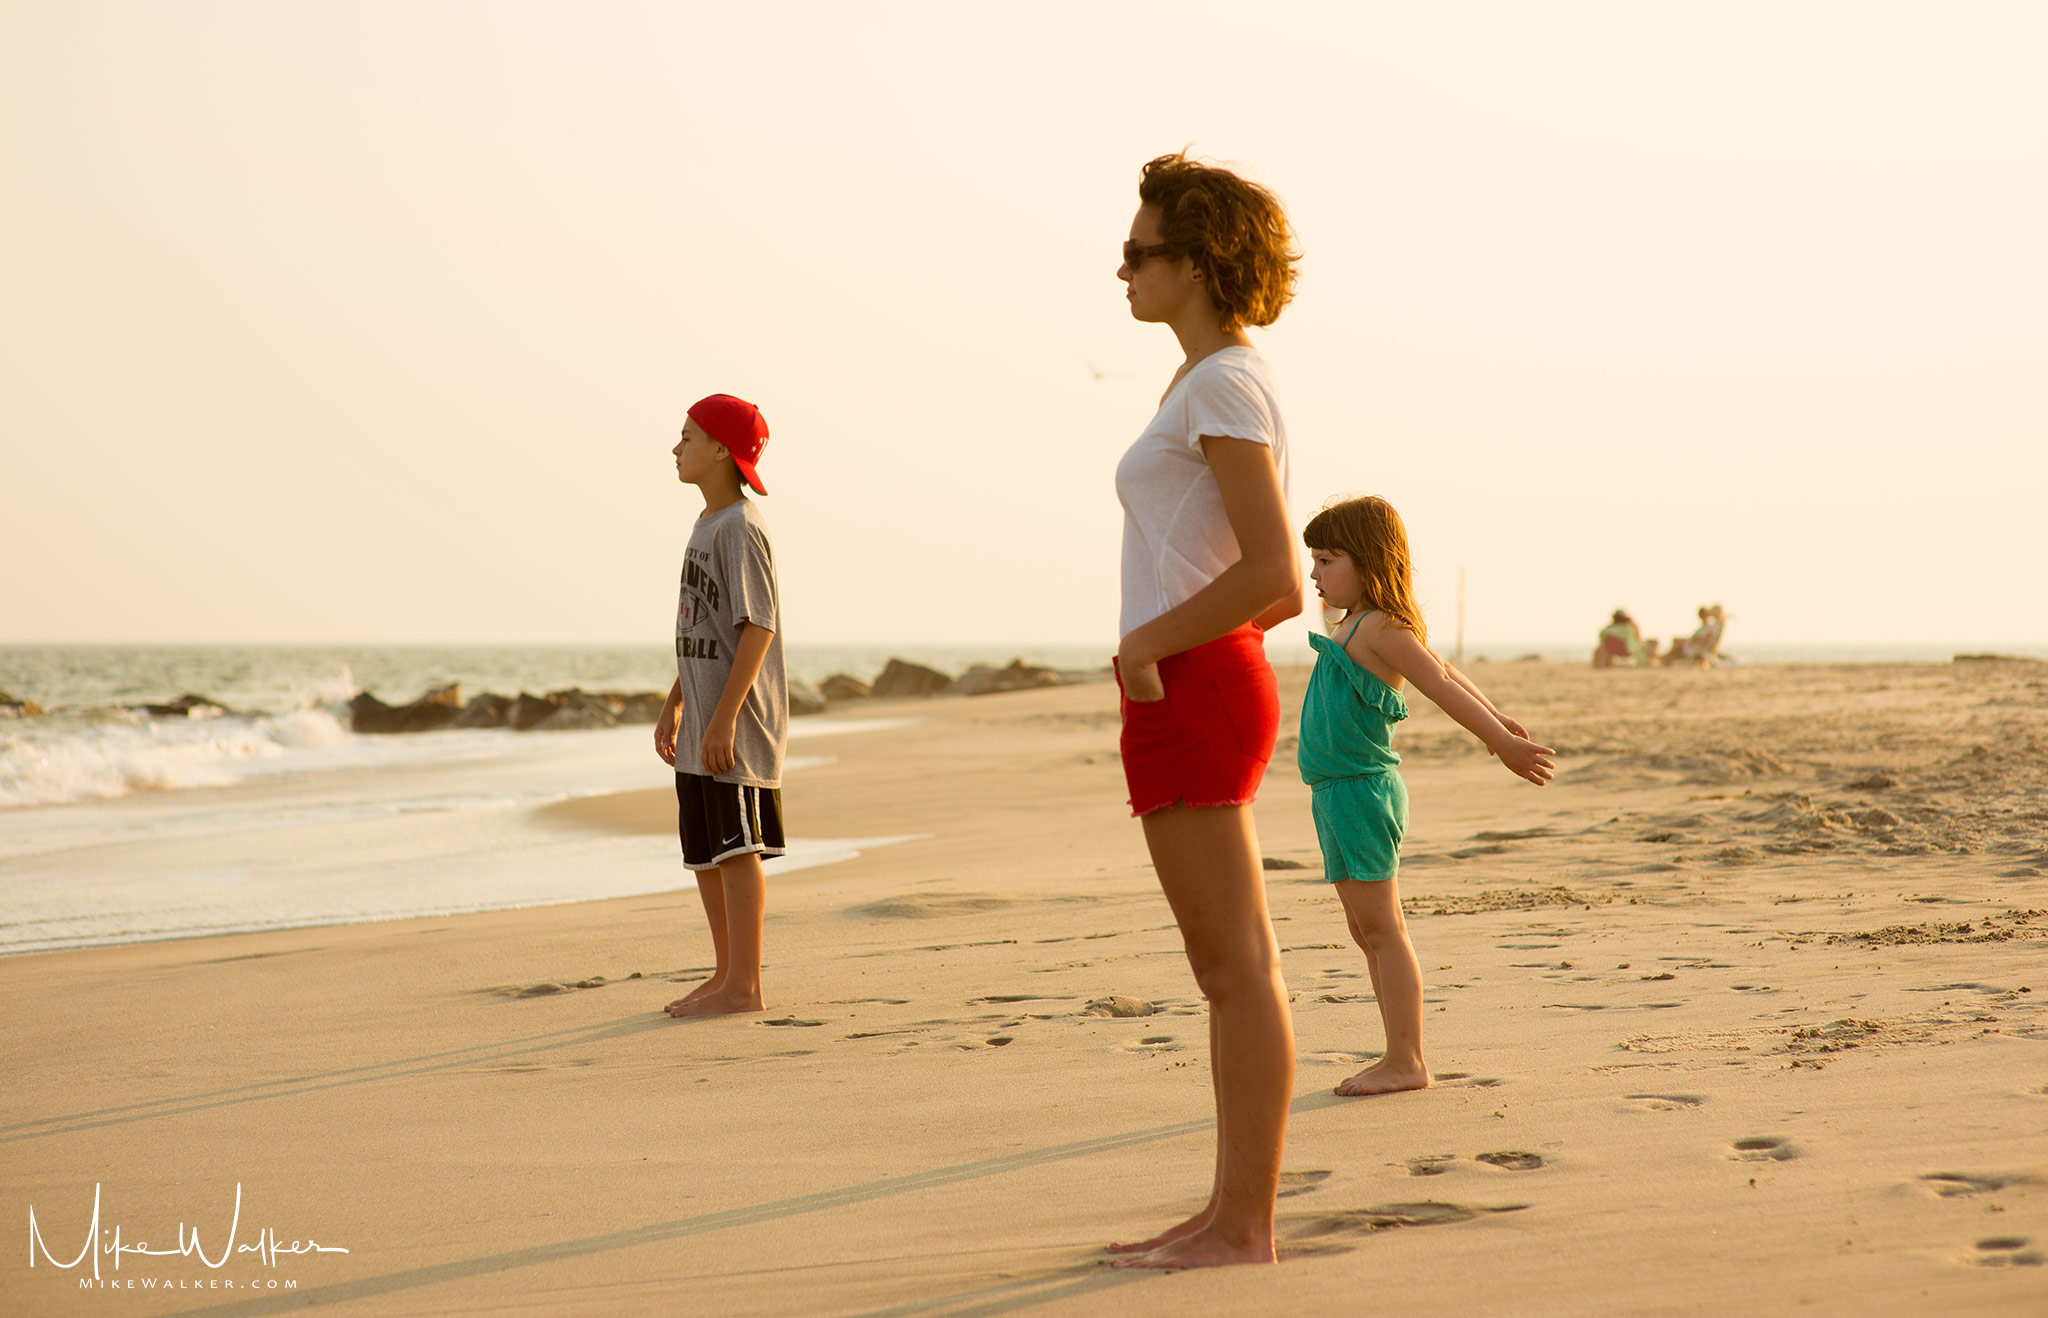 Three kids enjoying the ocean views. Family photography by Mike Walker.